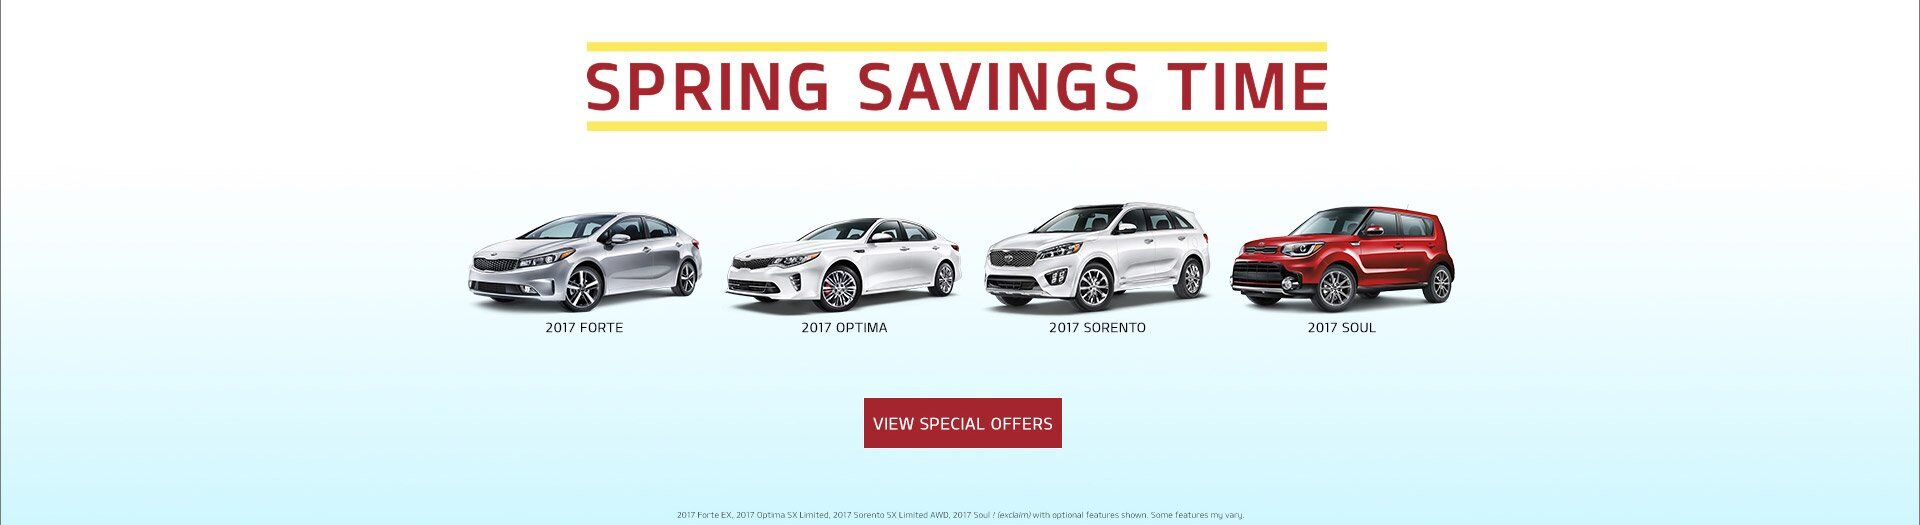 Spring Savings Time at Lehighton Kia